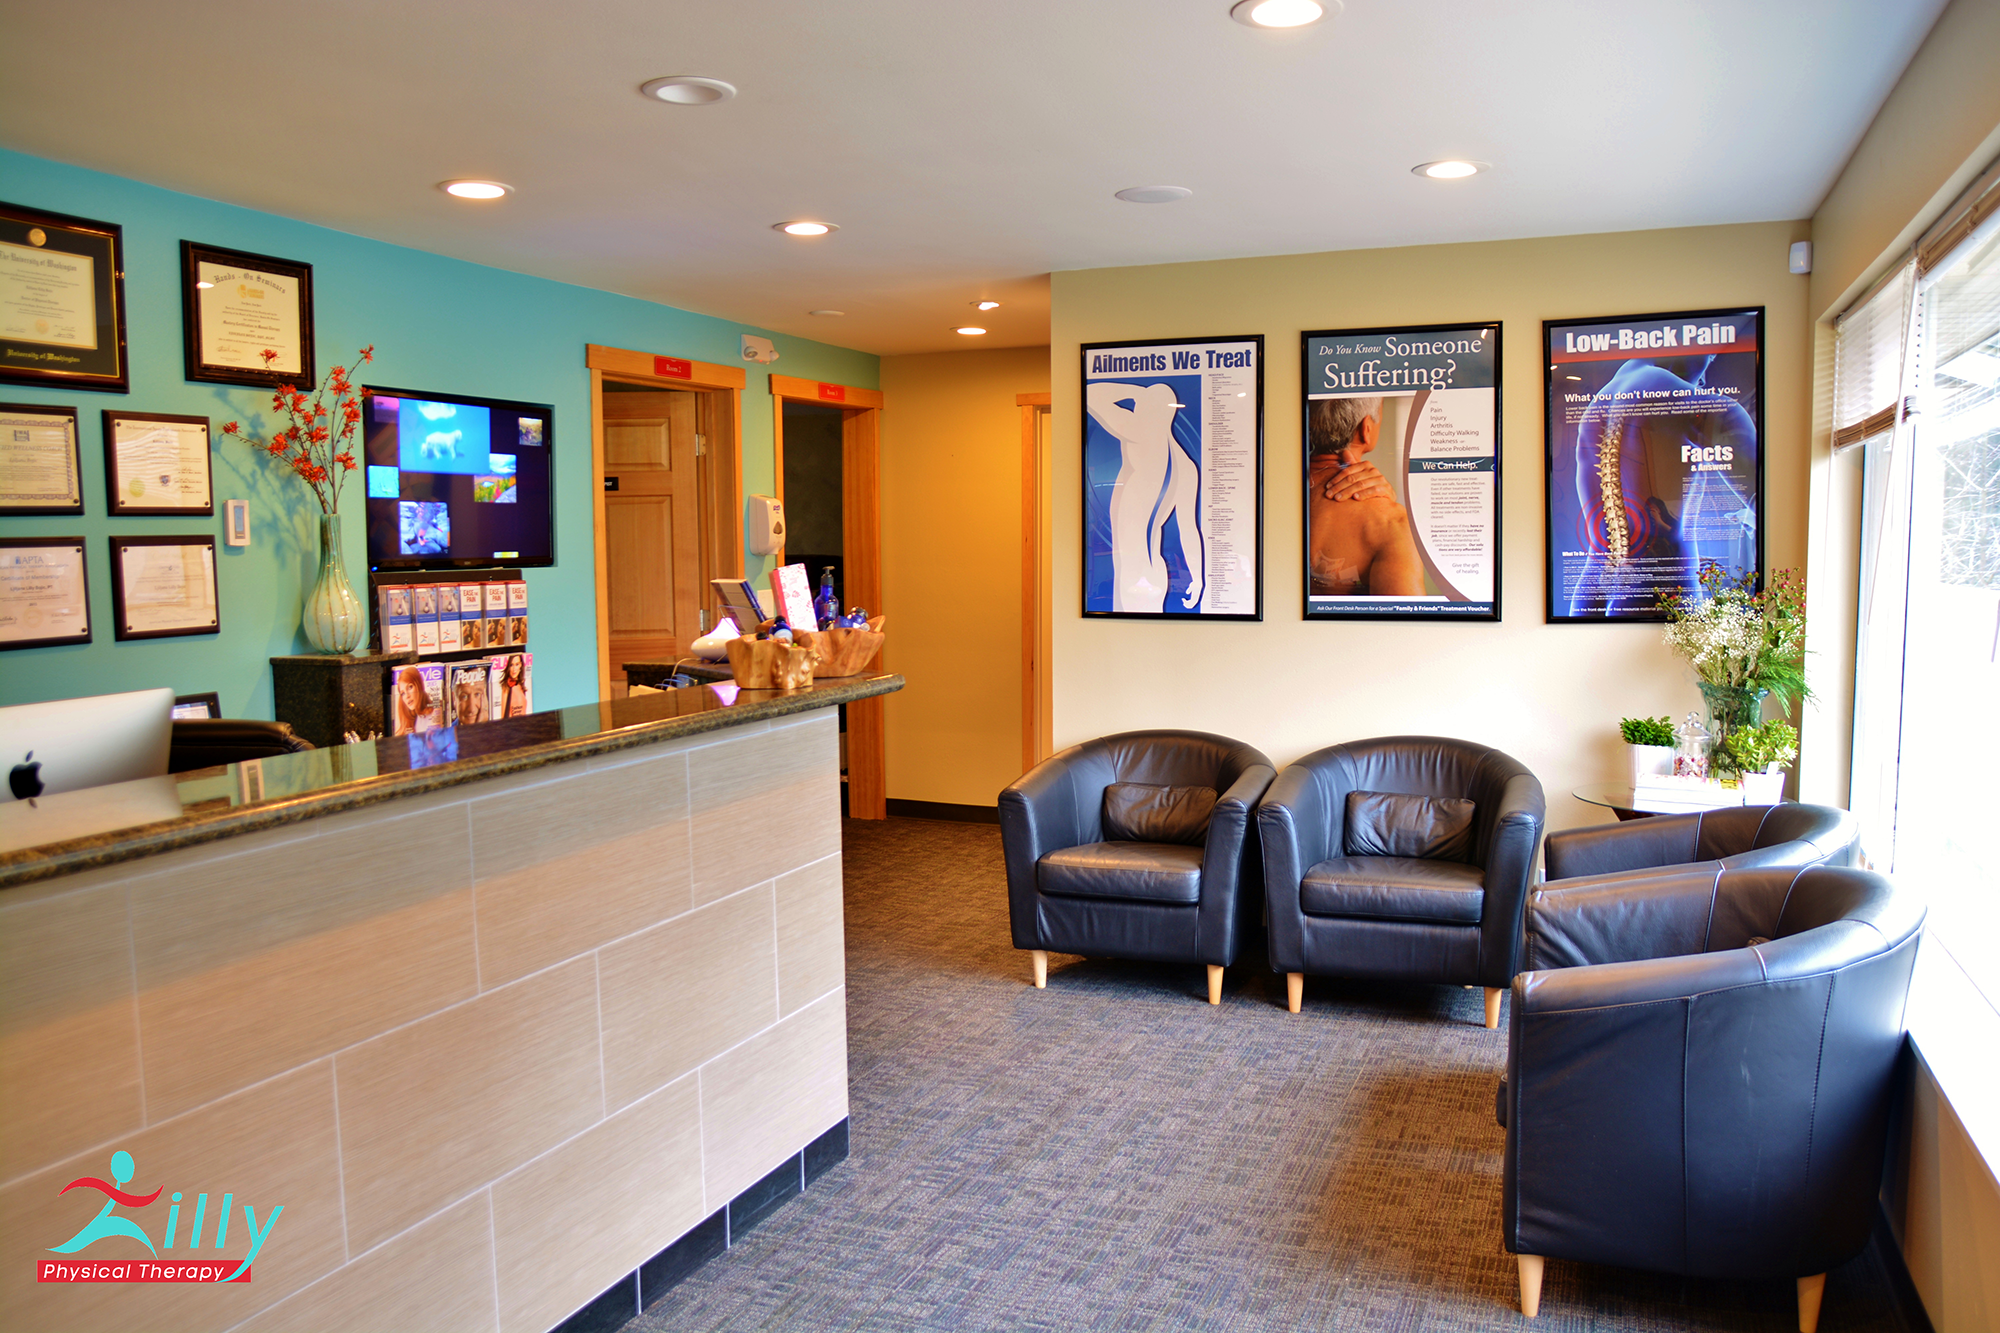 Lilly Physical Therapy image 3